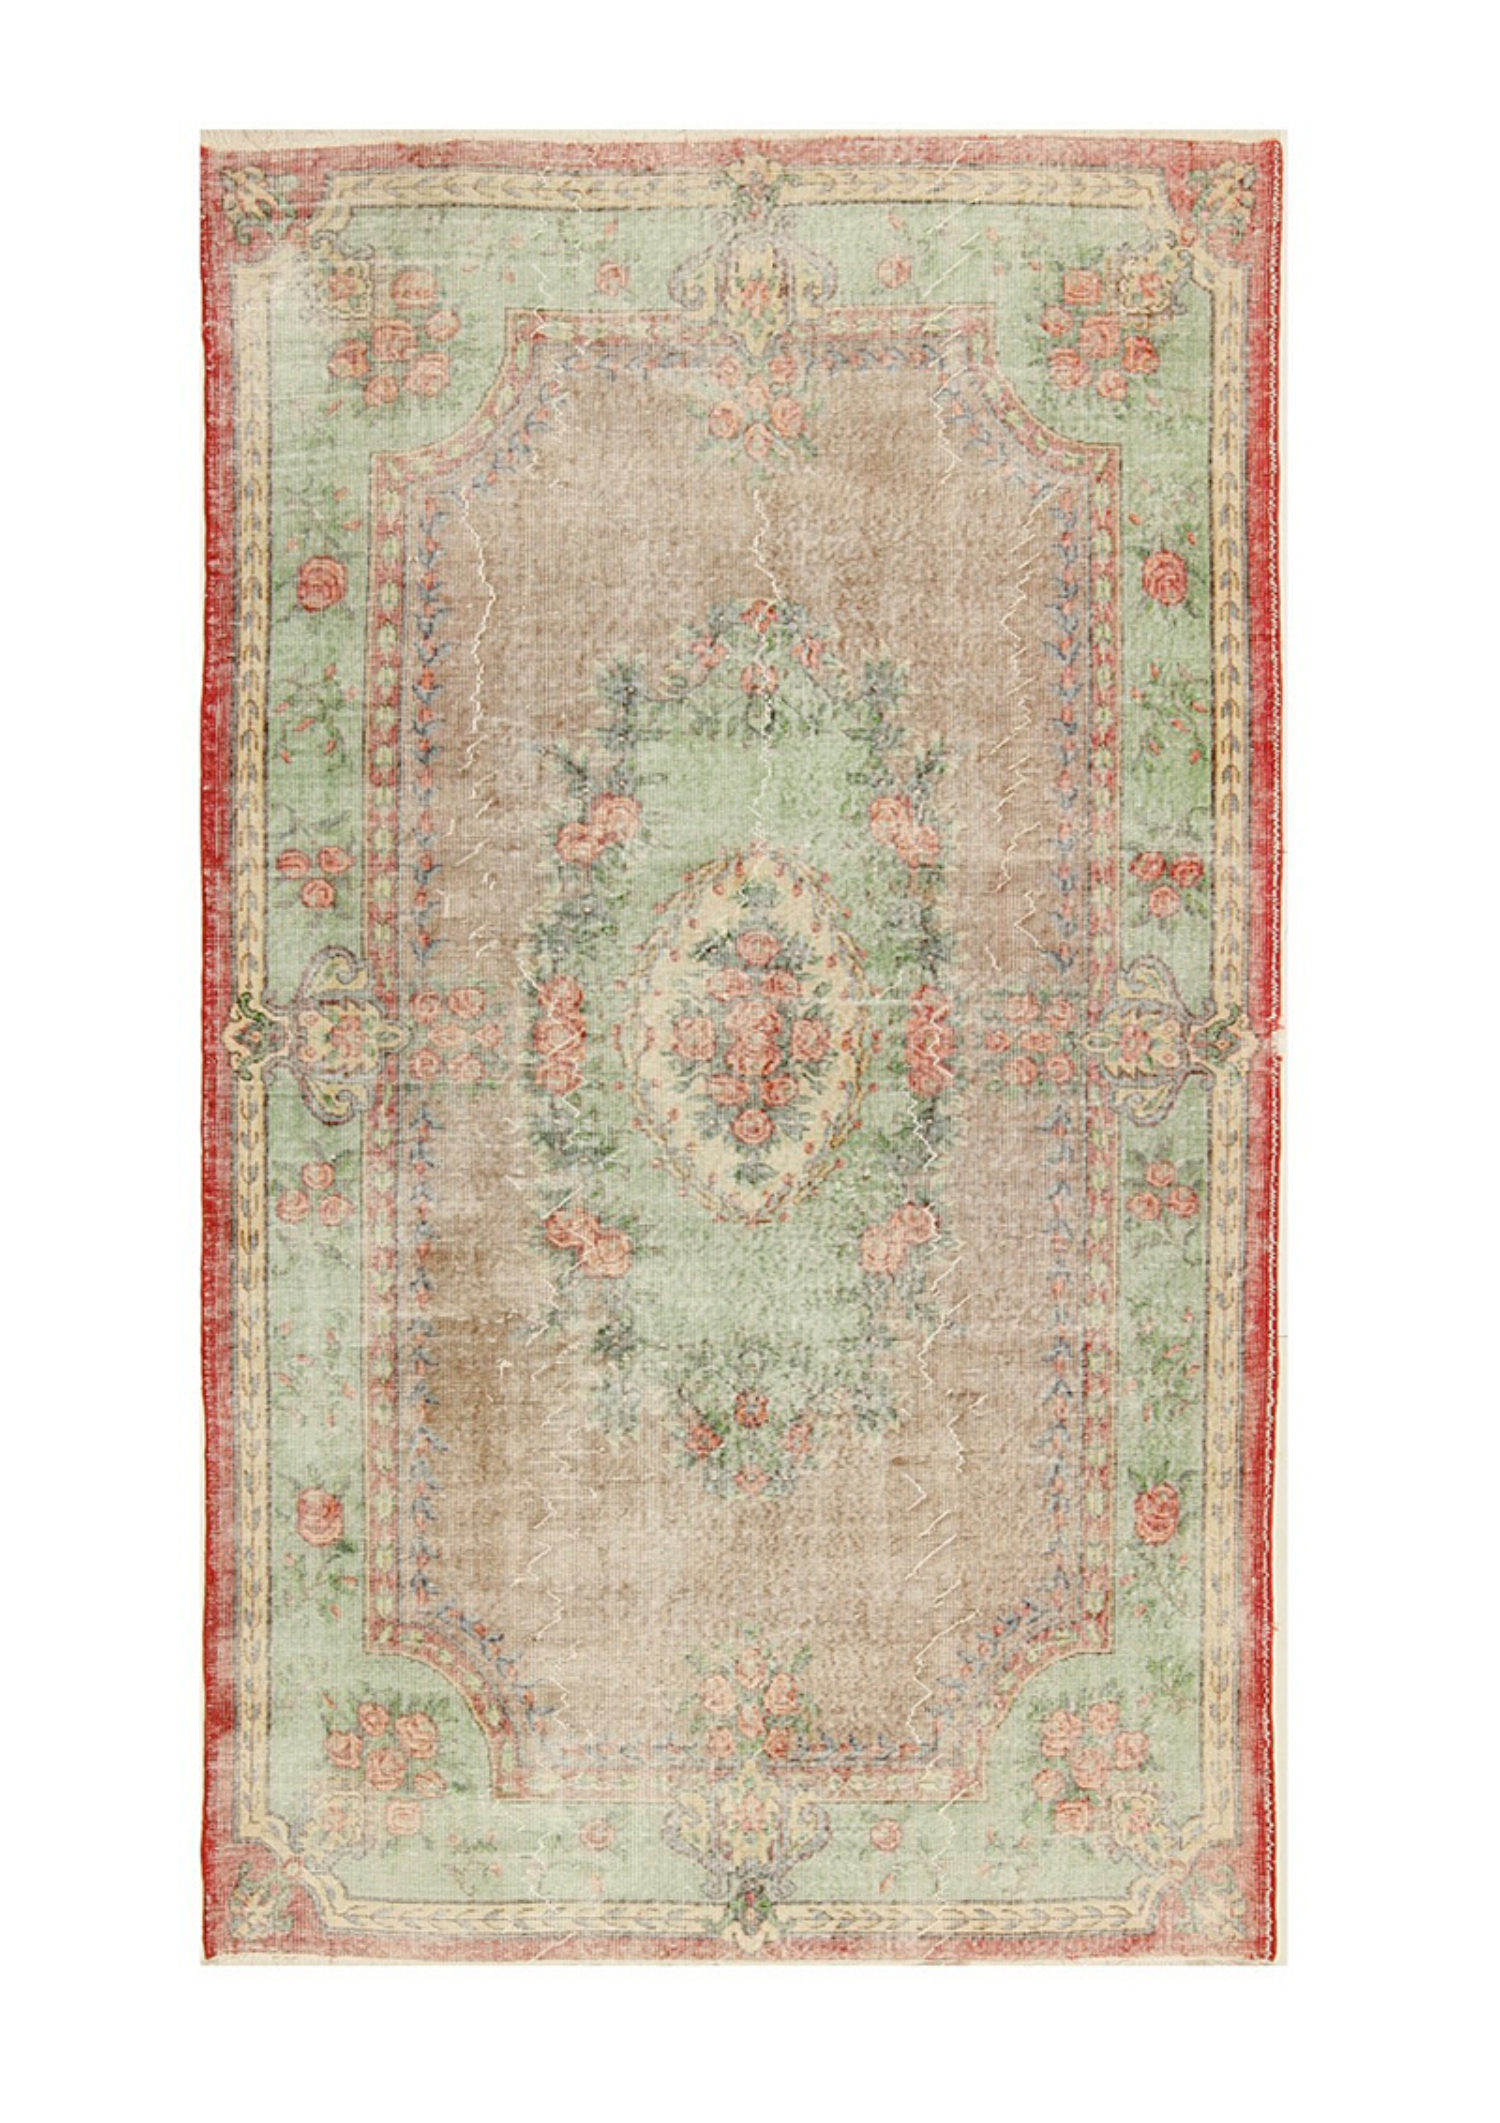 Vintage Red and Green Flowers 5568